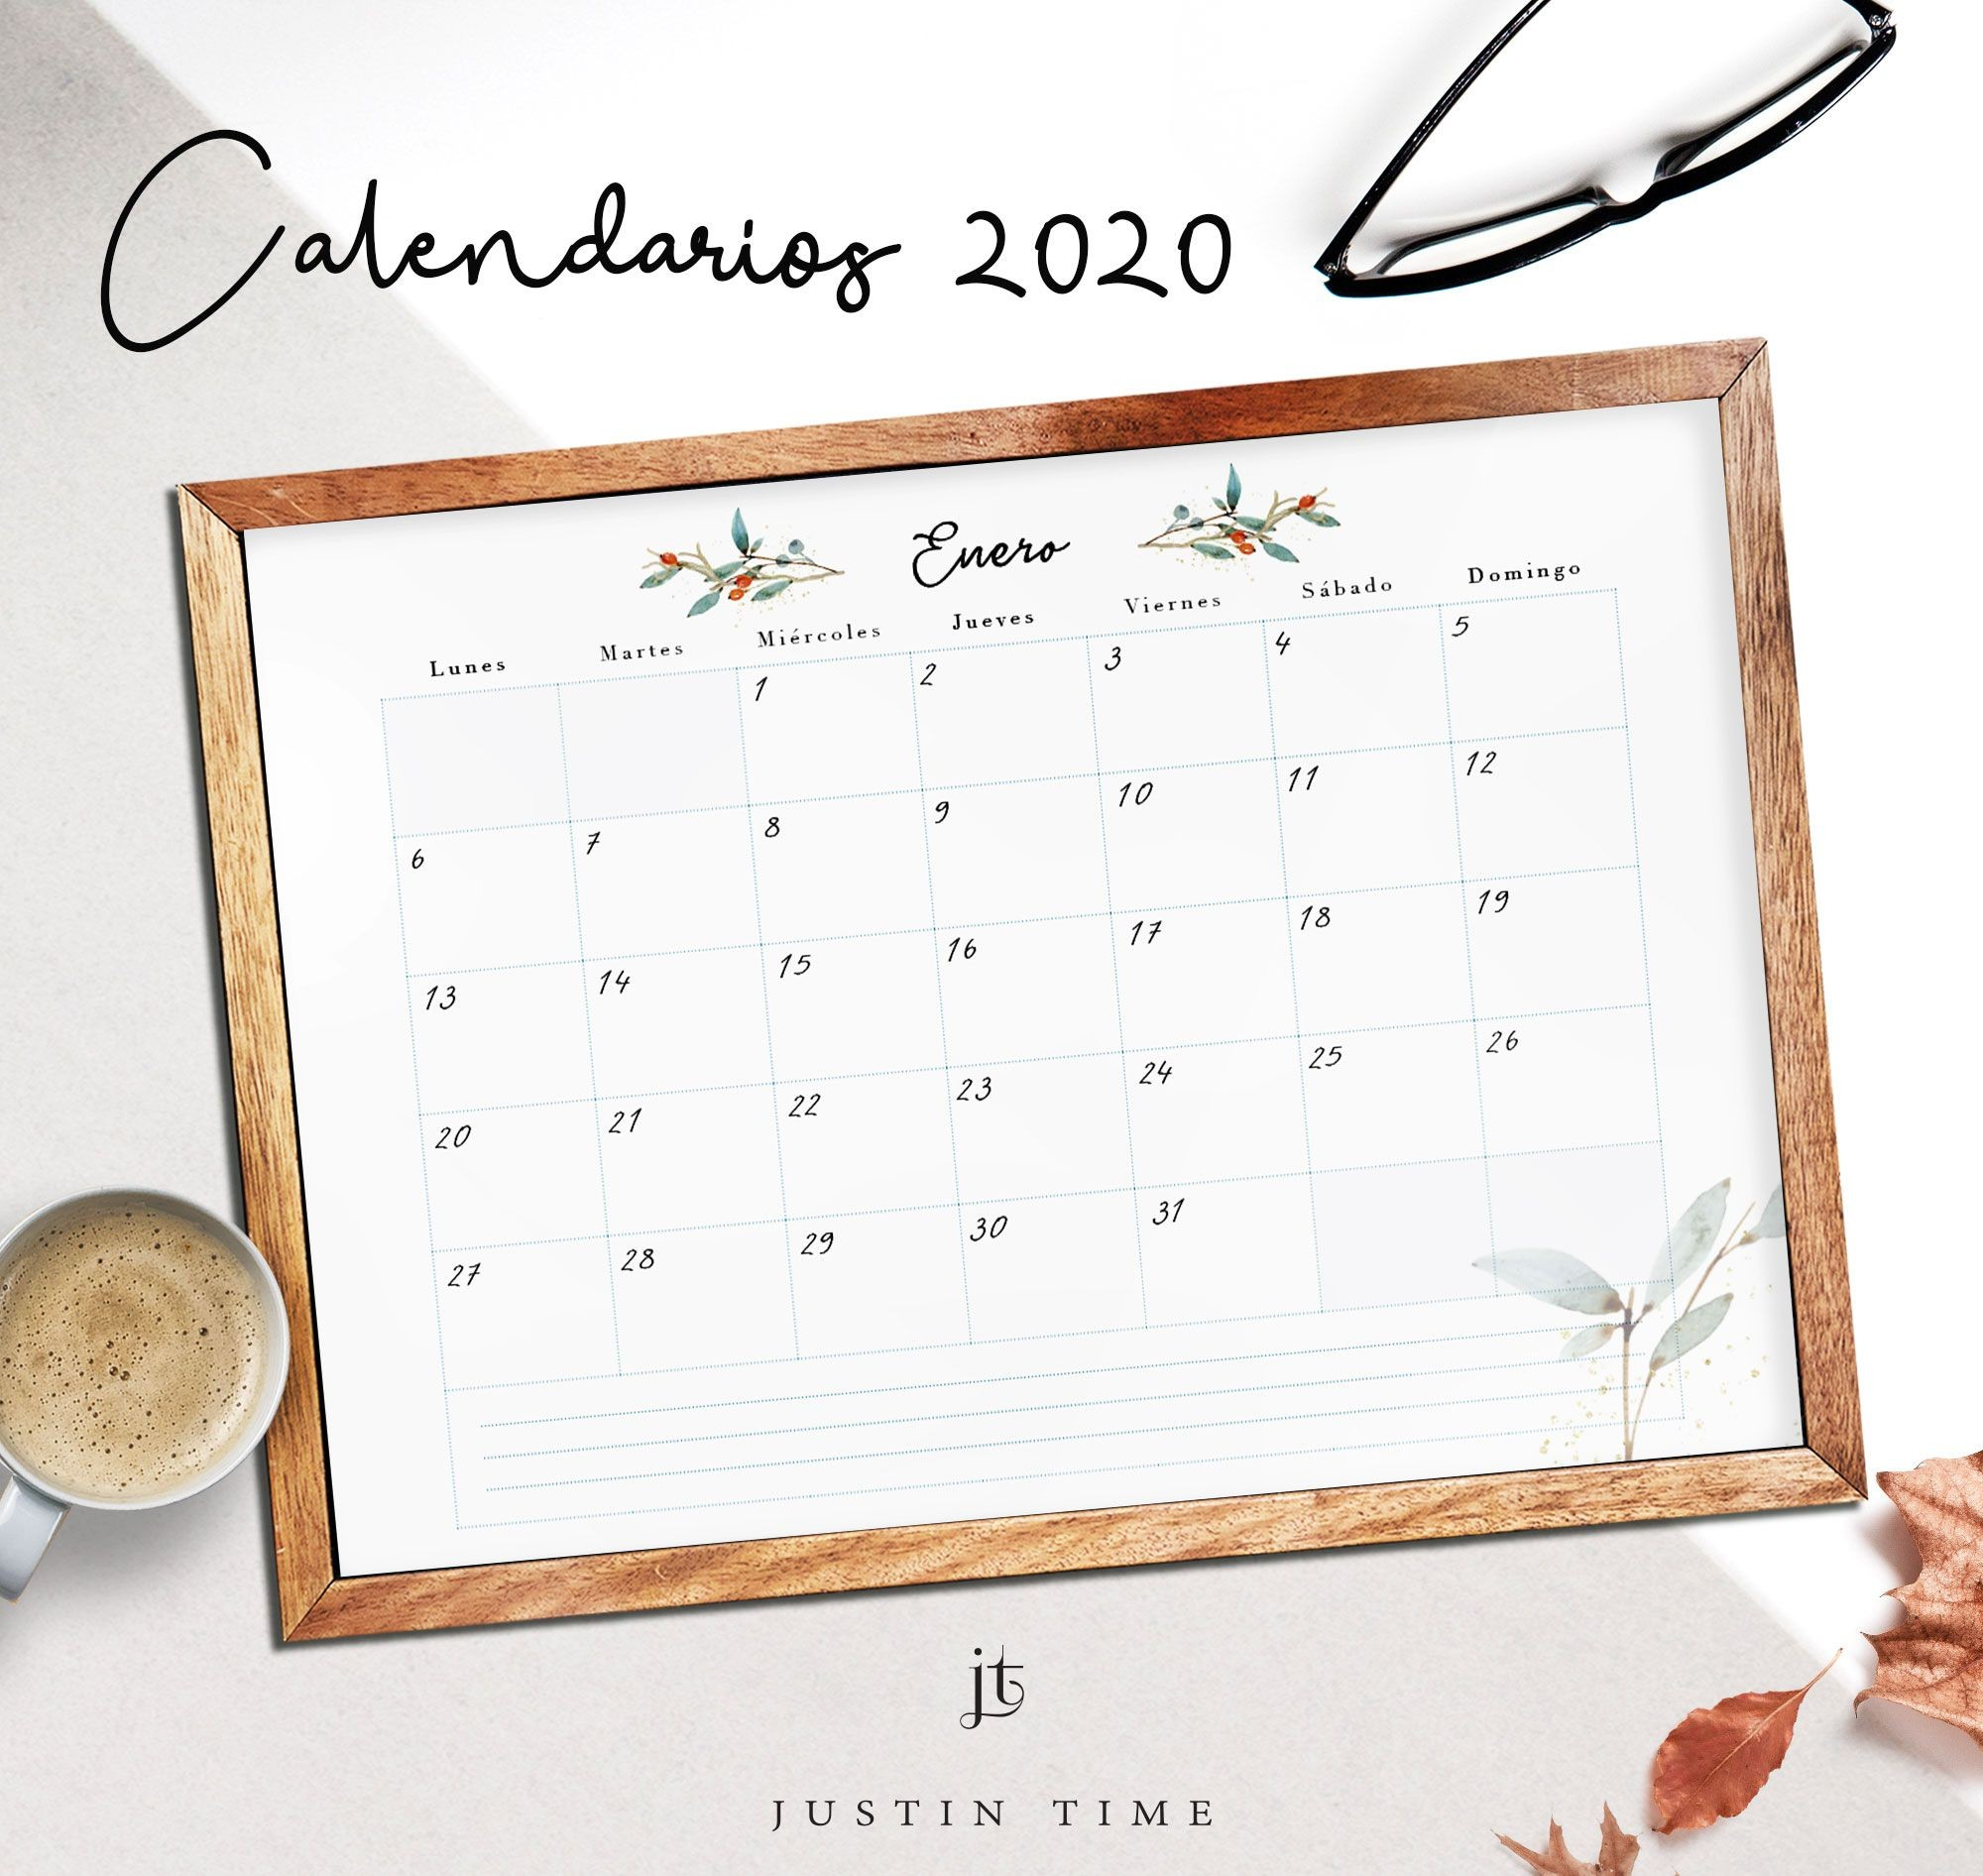 Calendario 2020 Jan Más Reciente Calendario Imprimible Para Escribir A3 A4 Y A5 Calendario Of Calendario 2020 Jan Más Populares Free Excel Calendar Templates Monthly Template Ic 2020 S